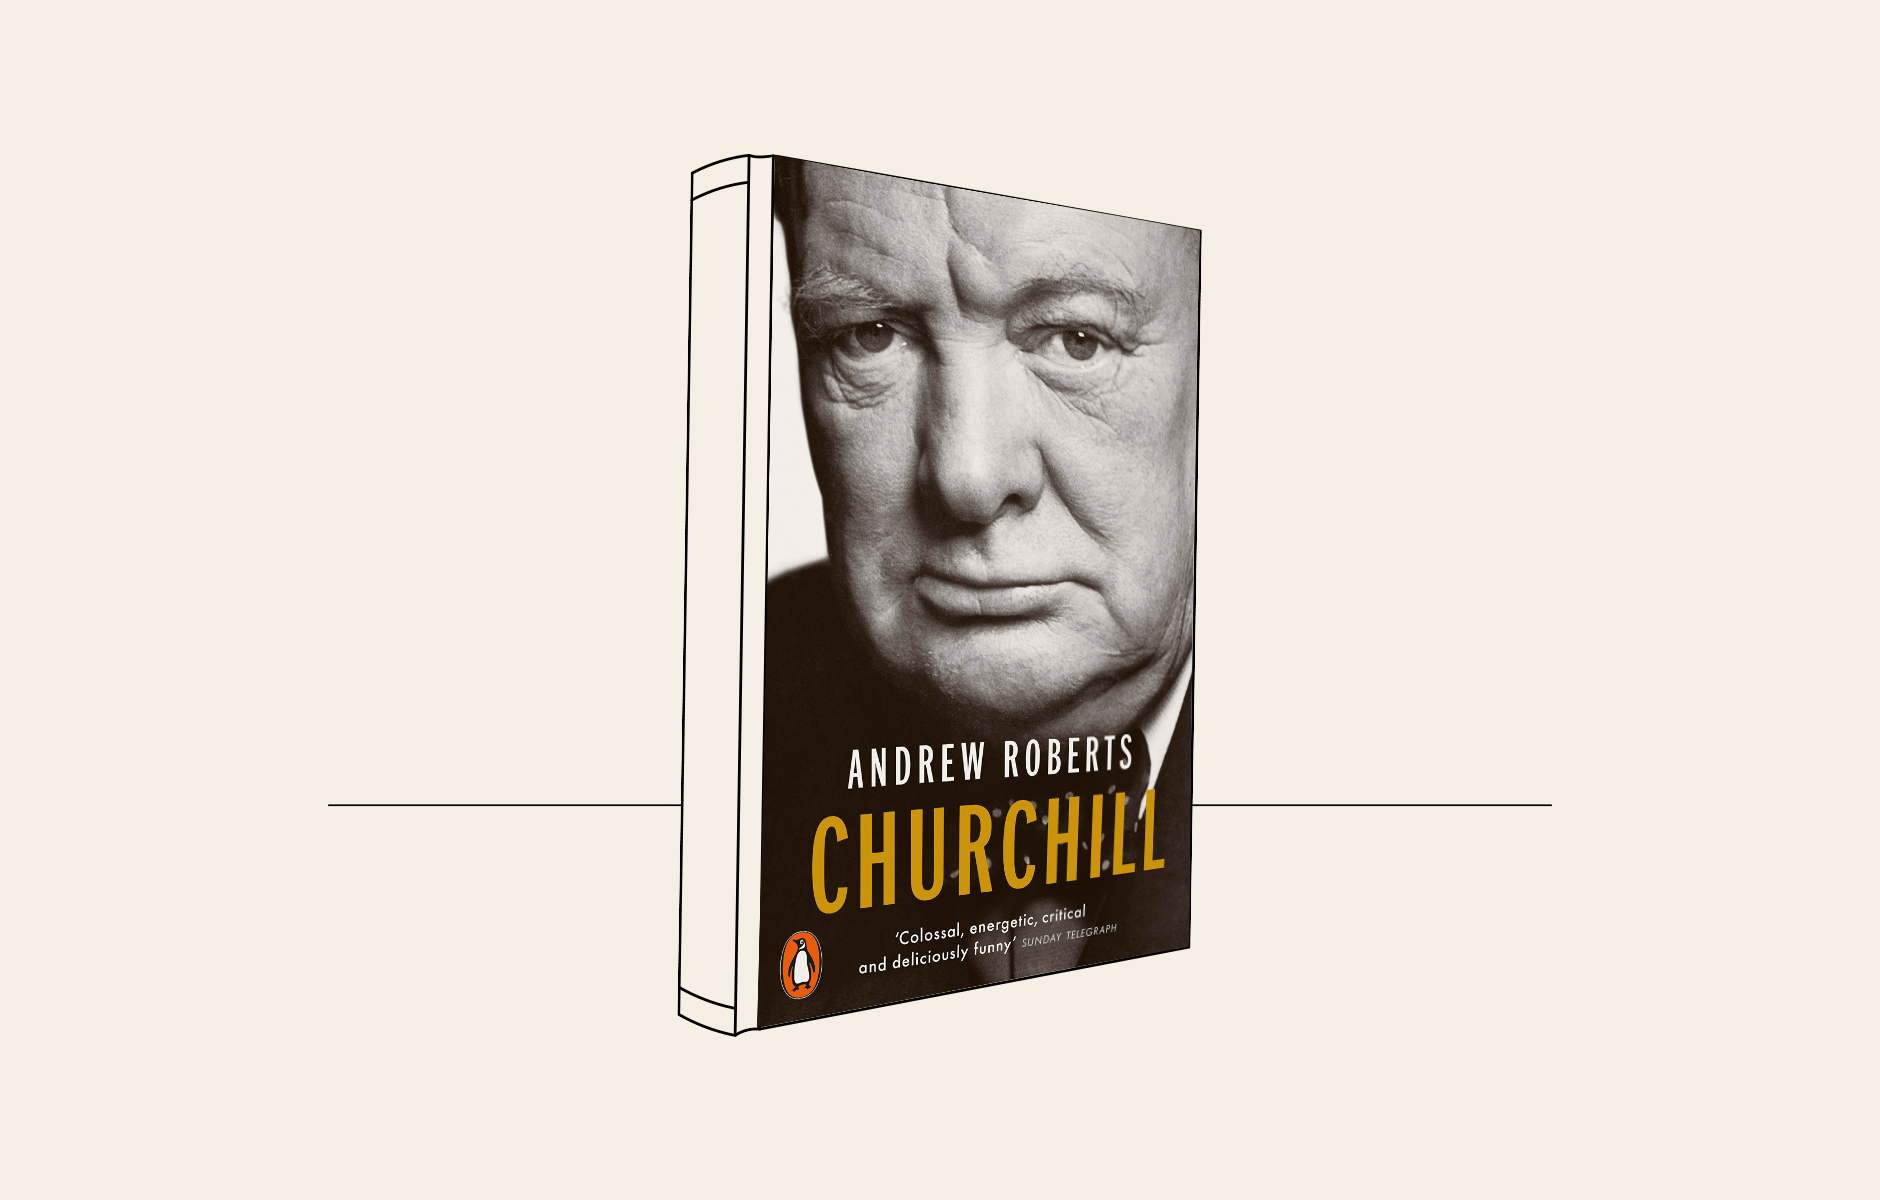 churchill_biografia_revista_mine